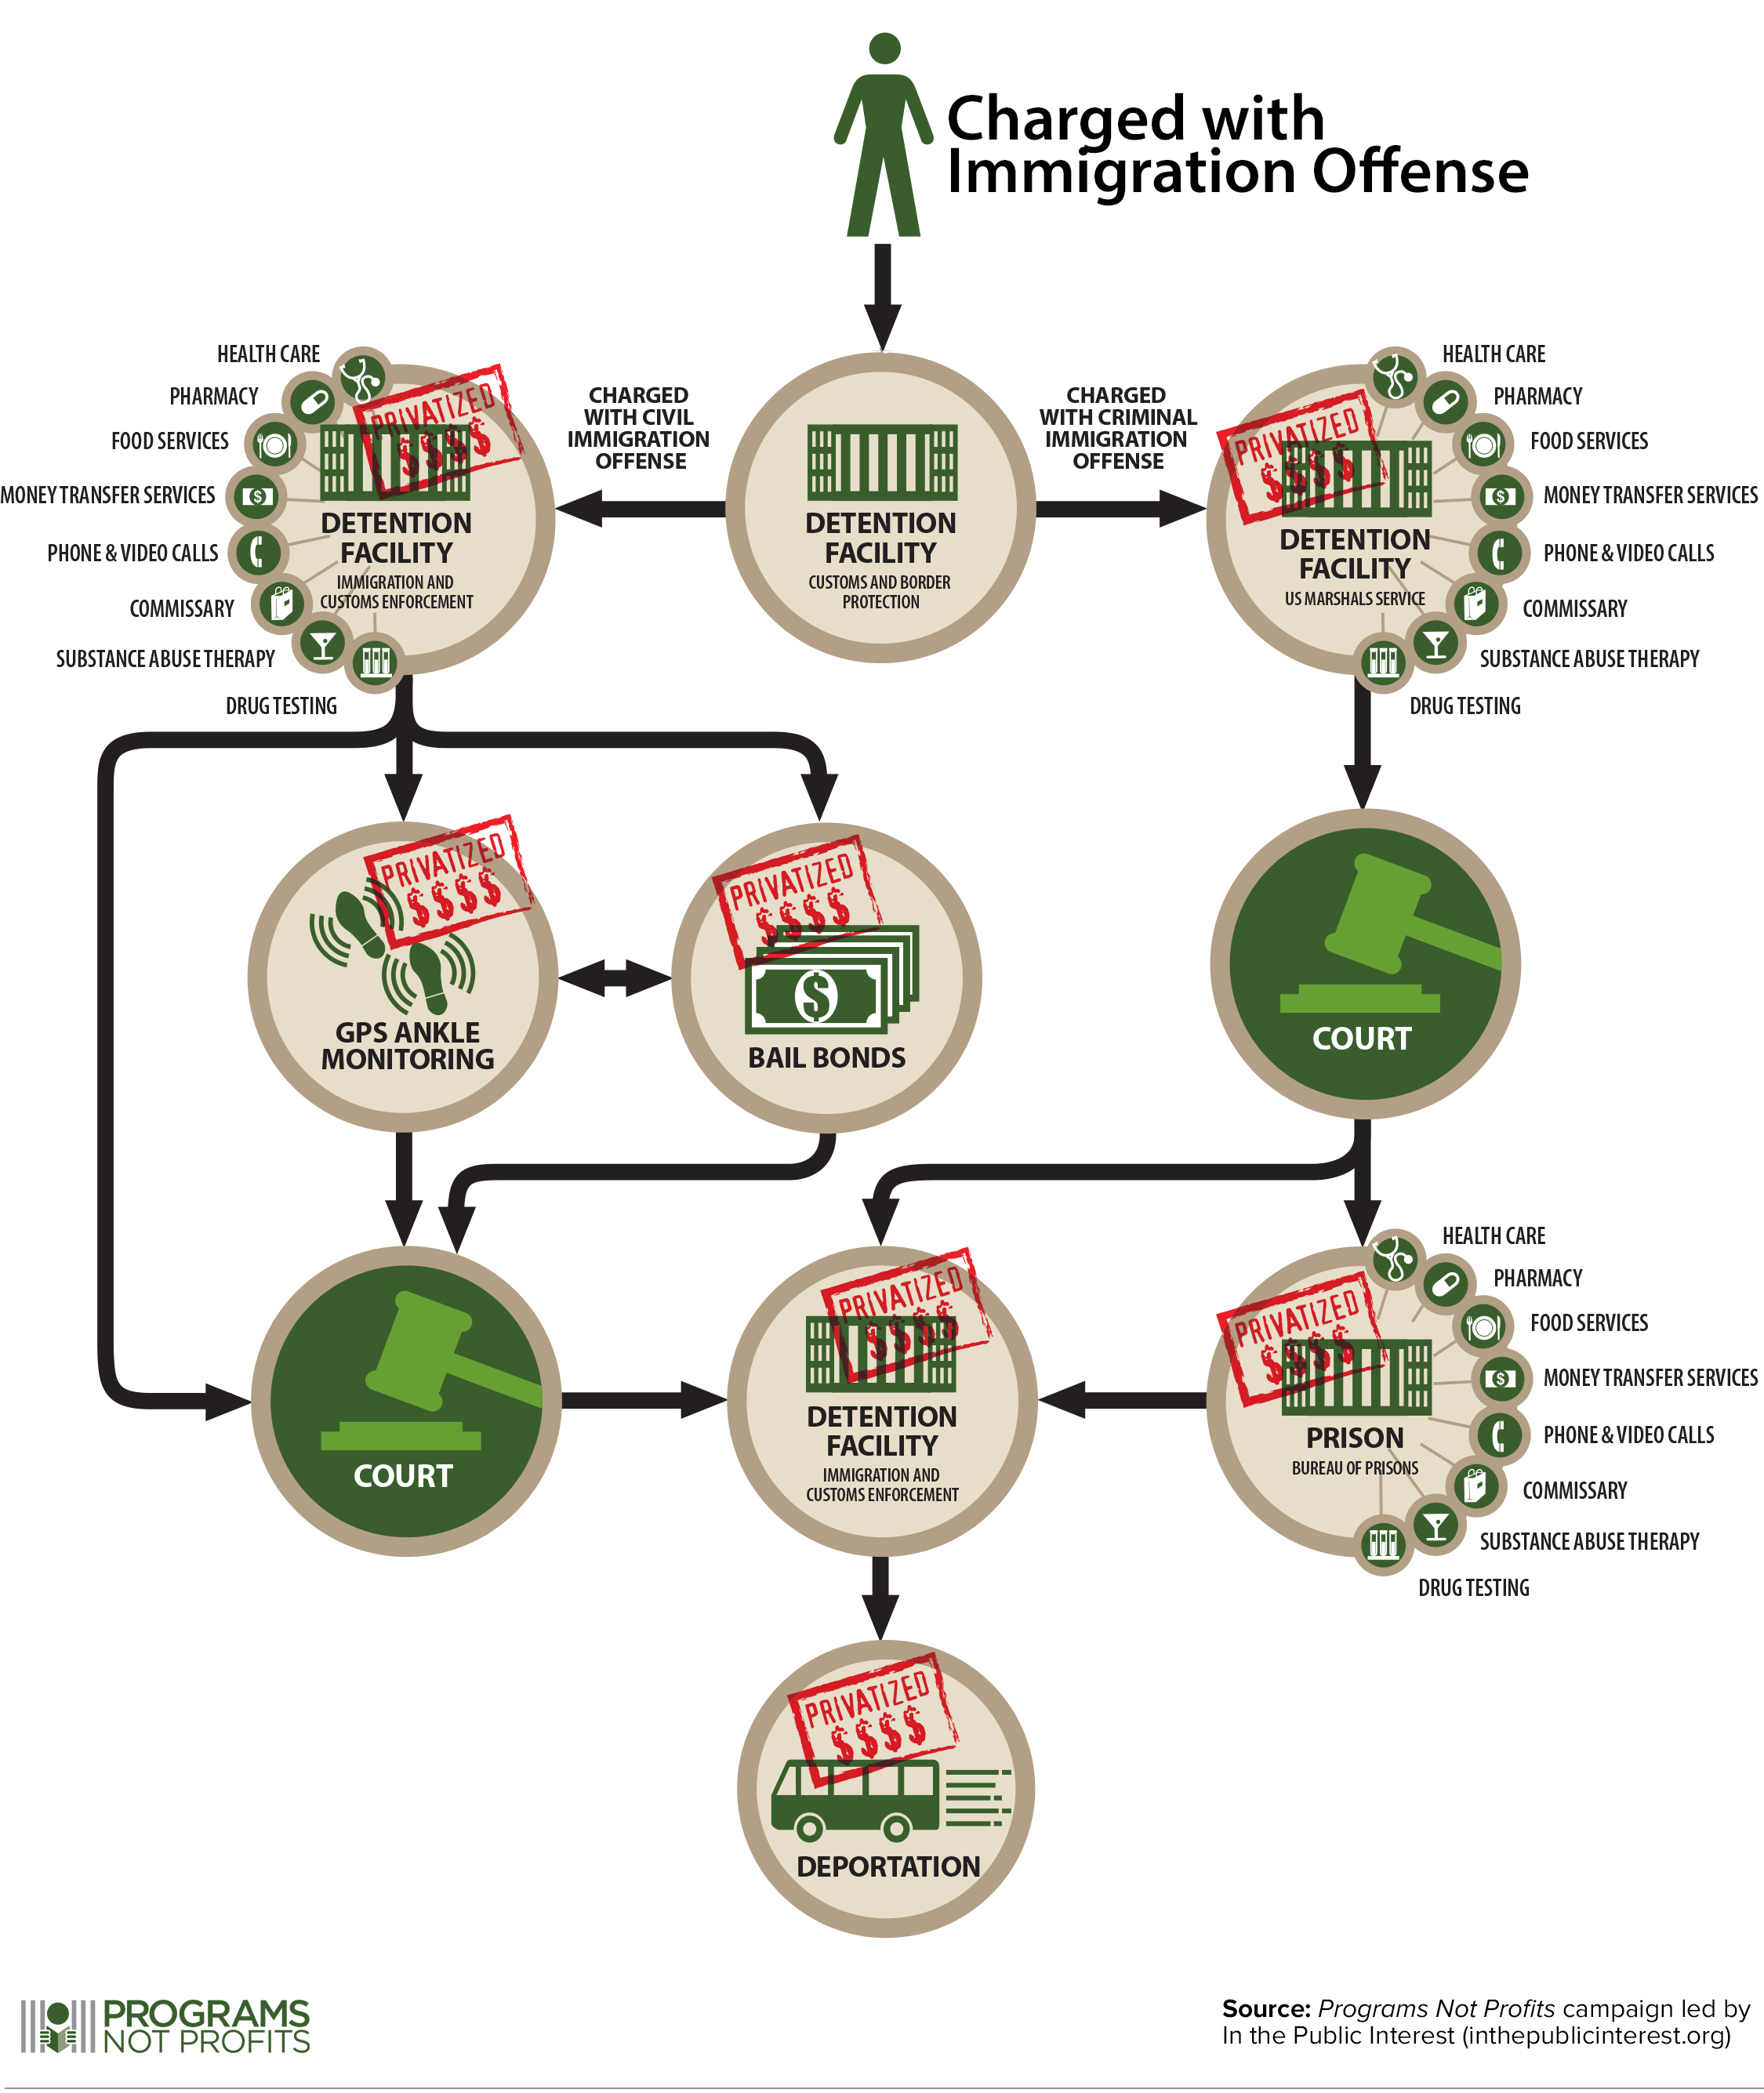 ITPI - Immigration - Programs Not Profits